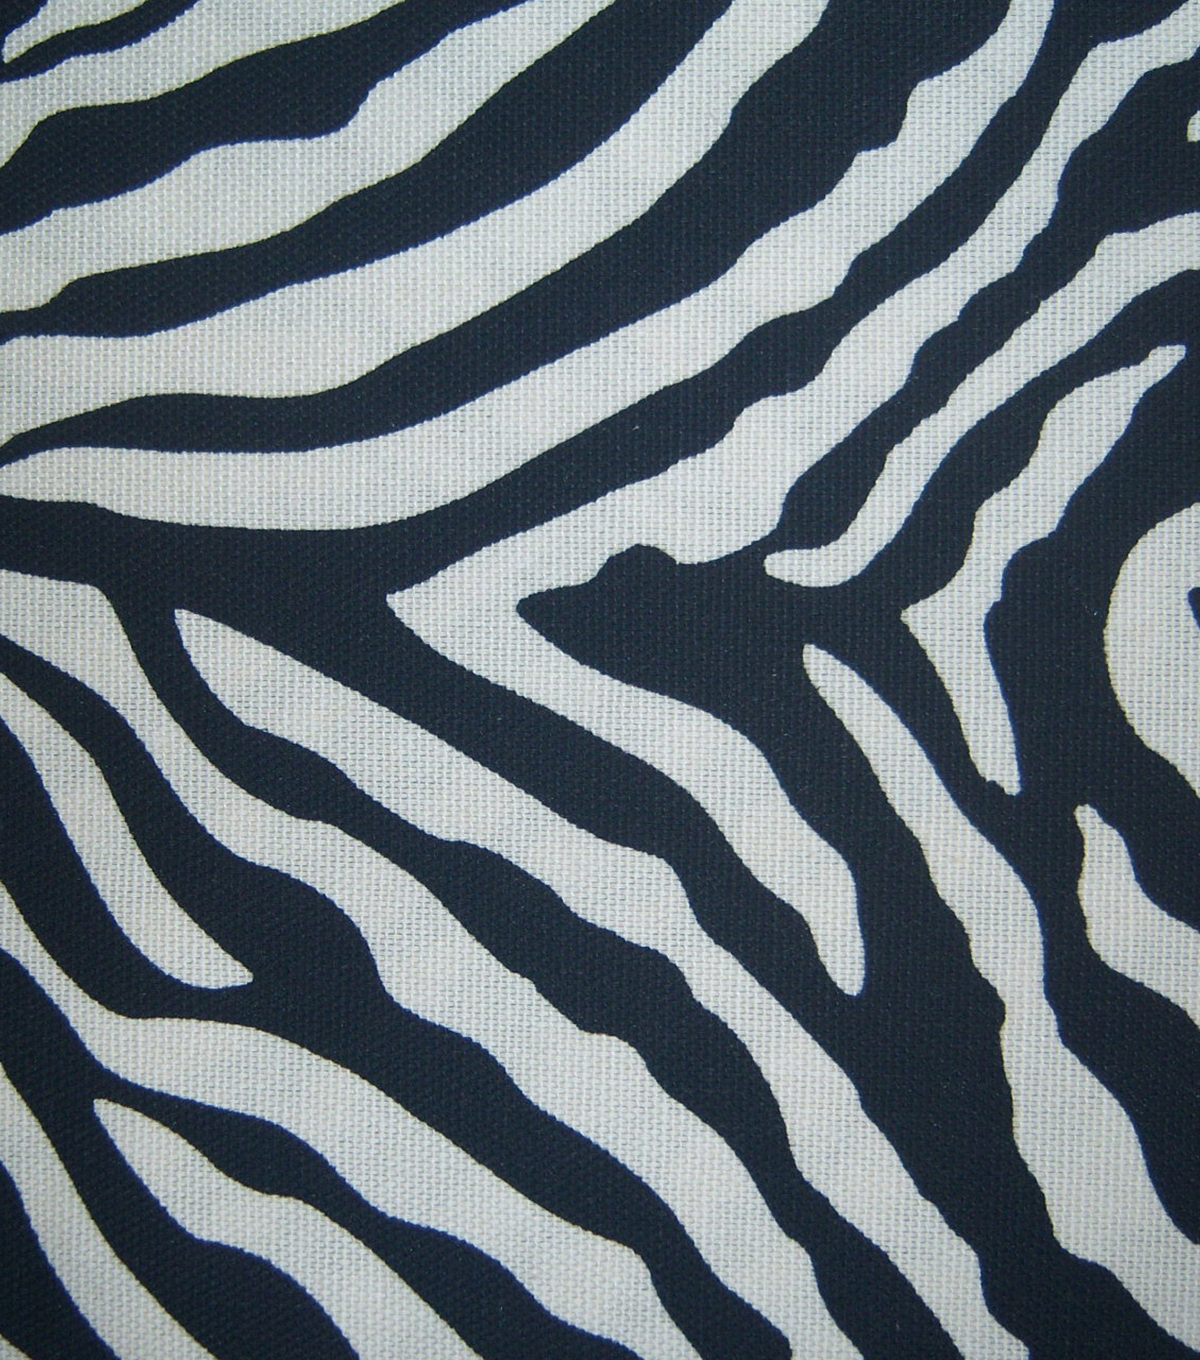 Home Essentials Lightweight Decor Fabric 45\u0022-Black Zebra